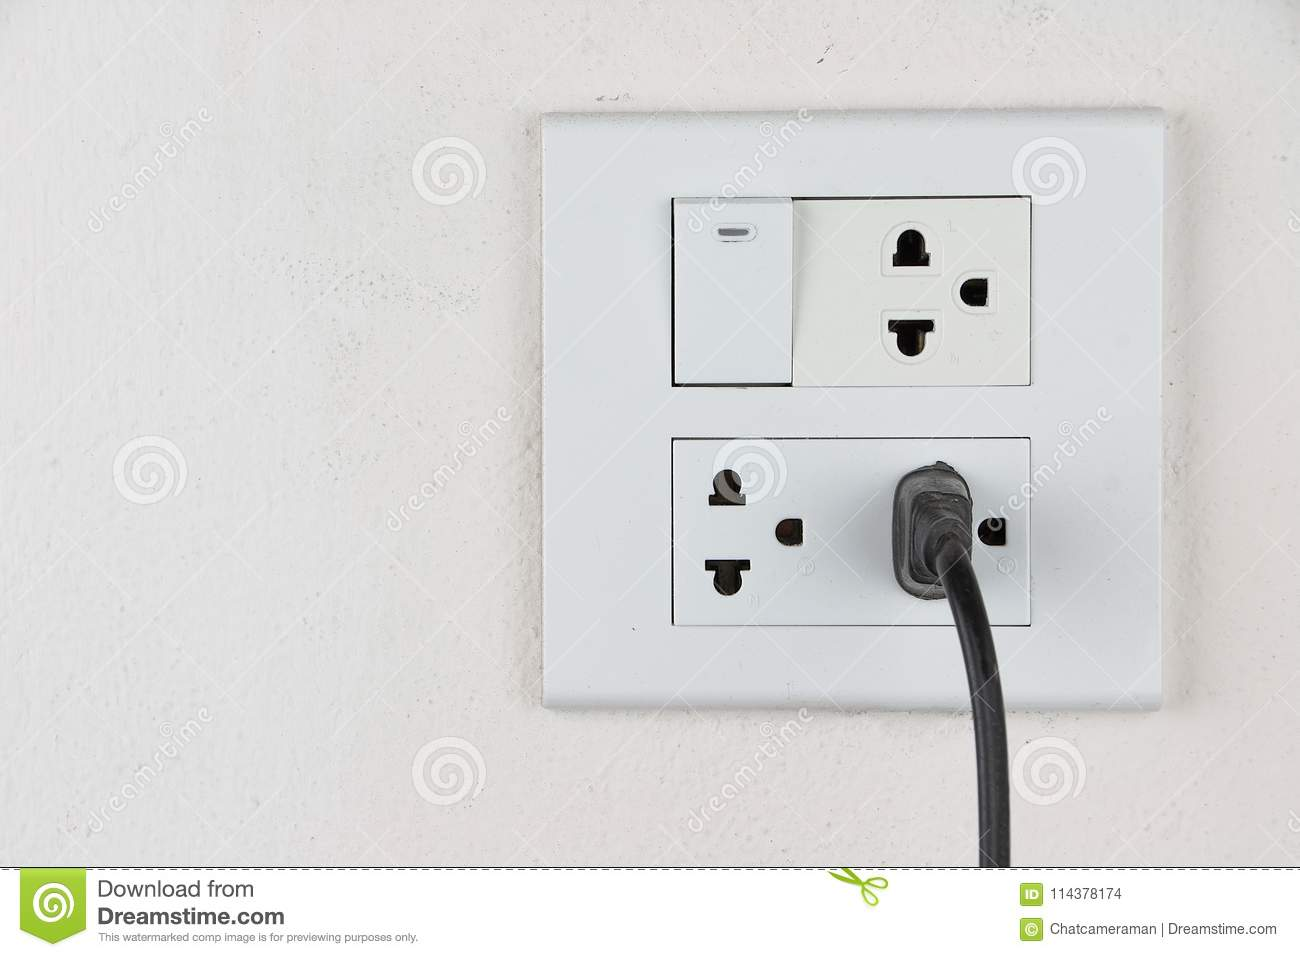 Plug In Socket And Switch Stock Photo Image Of Outlet 114378174 Wiring A To